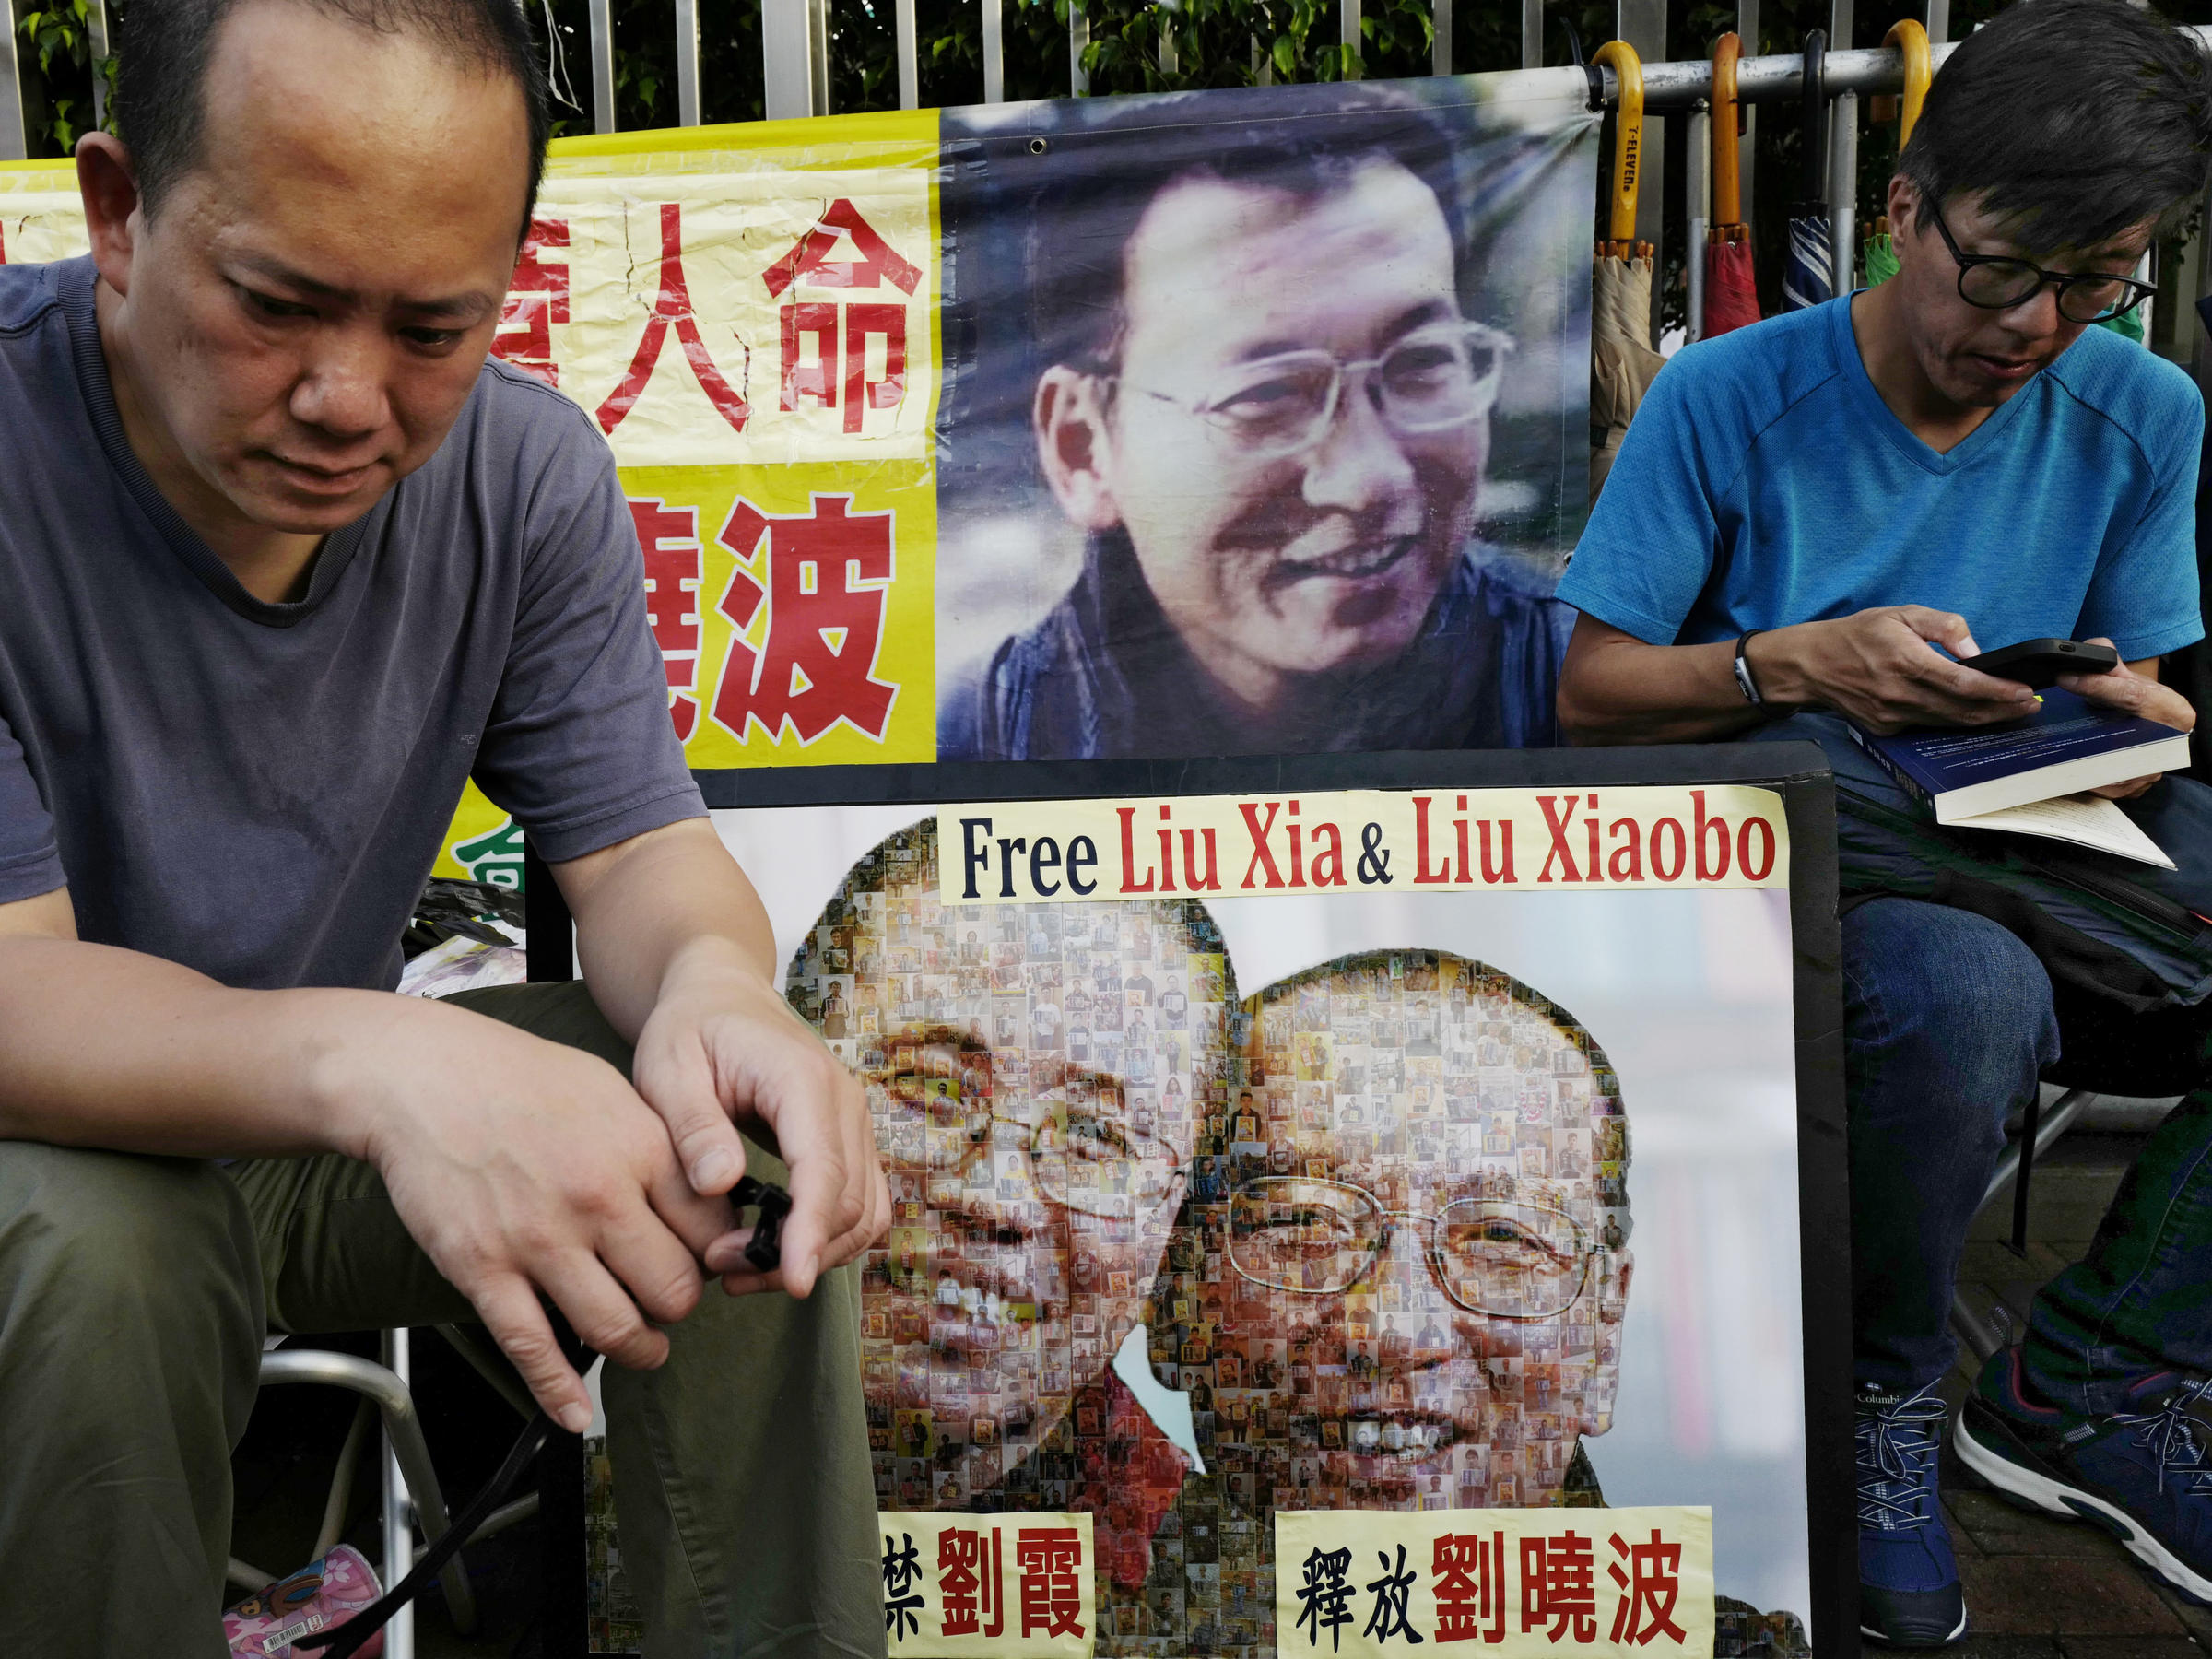 Nobel Peace Prize victor Liu Xiaobo in life-threatening condition, says hospital